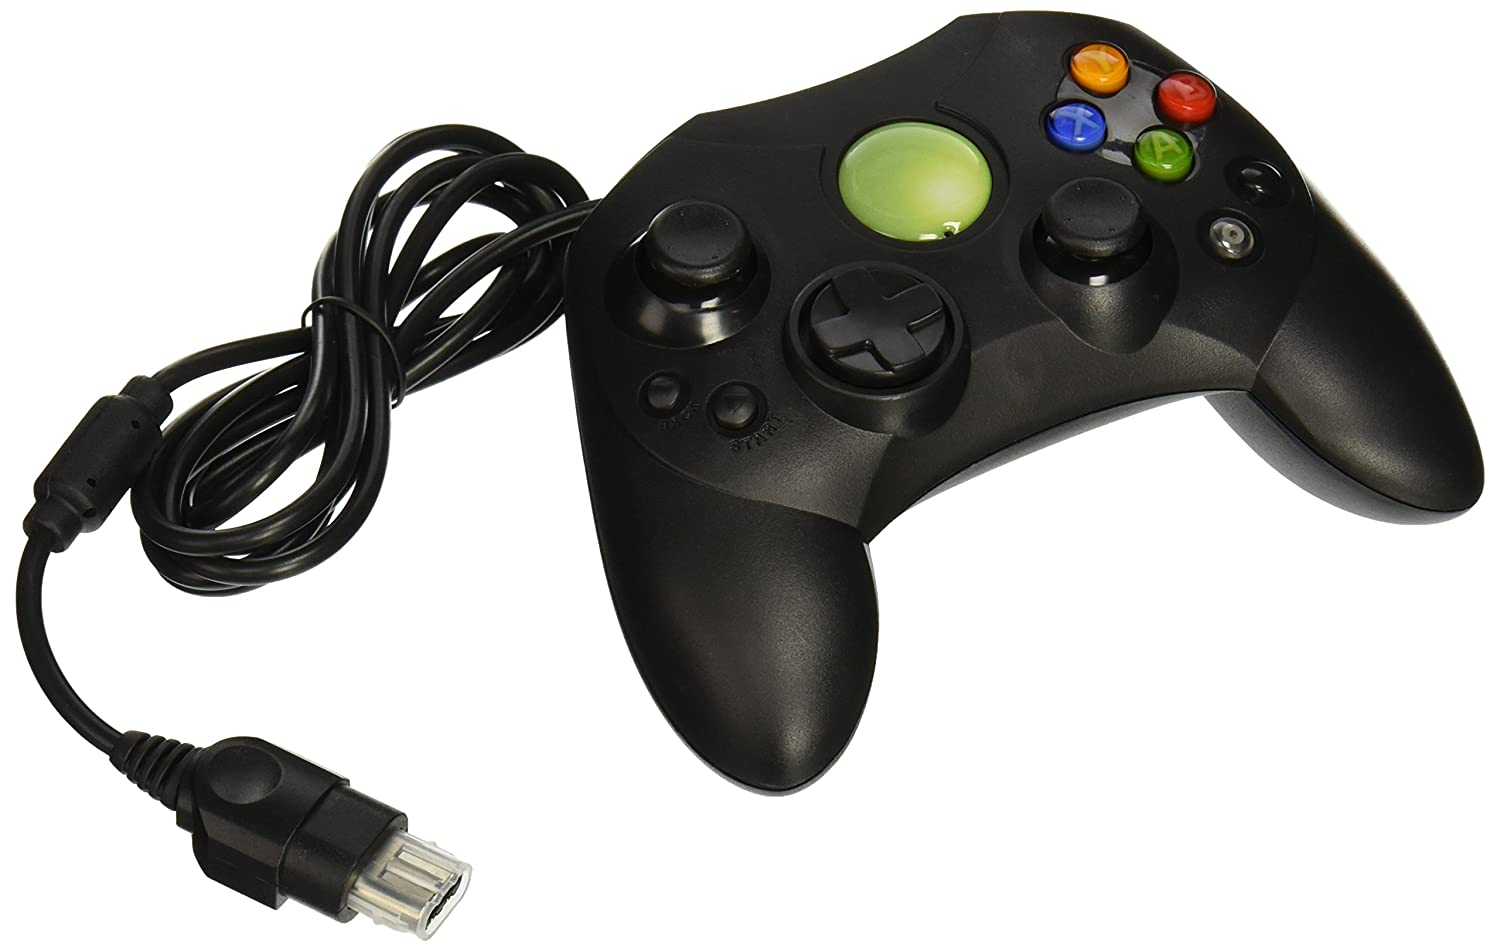 Amazon.com: Old Skool Xbox Controller S-Type Wired Game Pad - Black ...